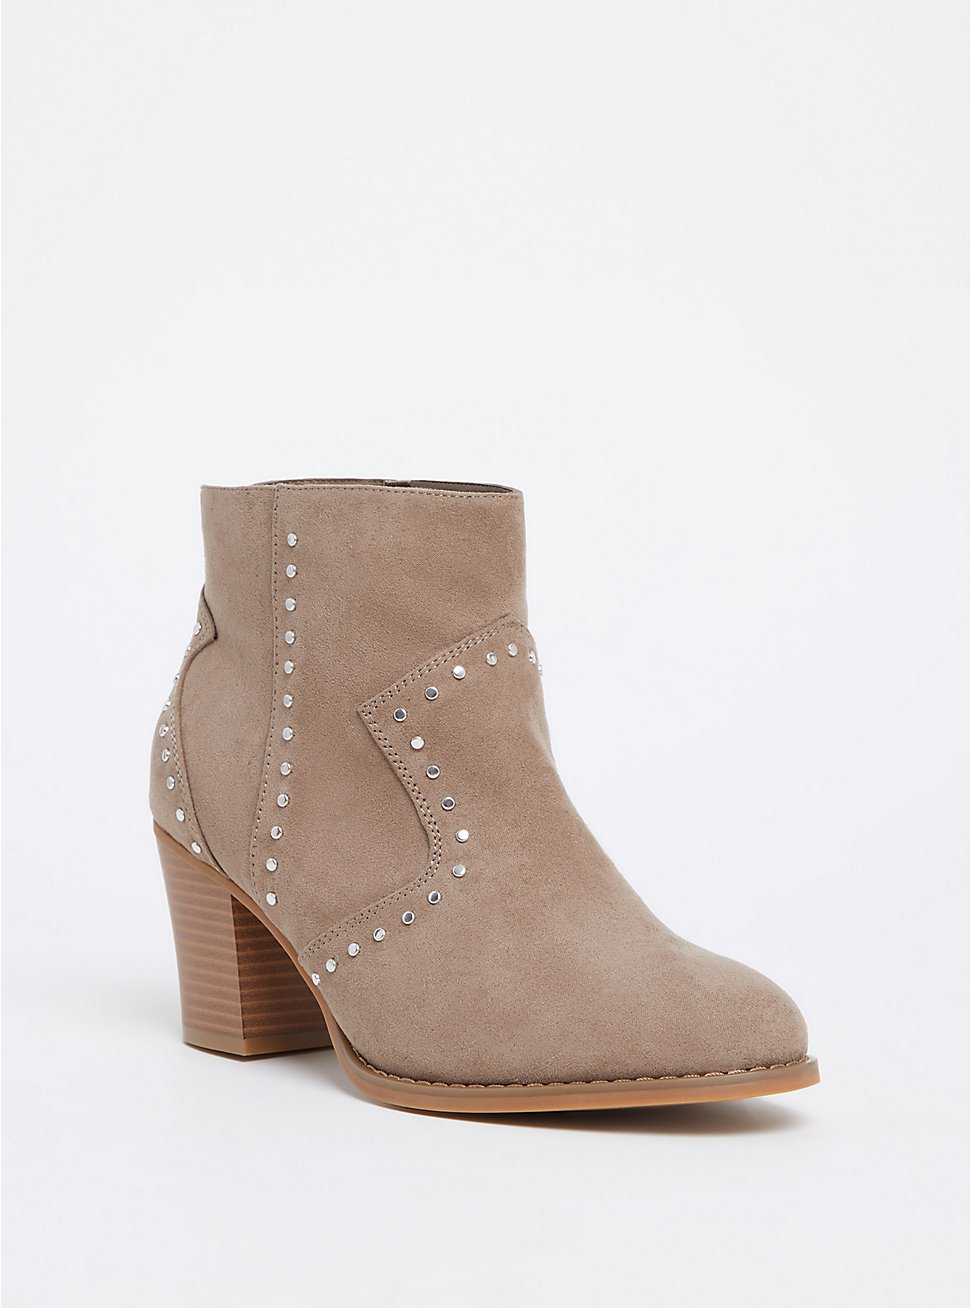 Taupe Faux Suede Studded Bootie (WW), TAN/BEIGE, hi-res